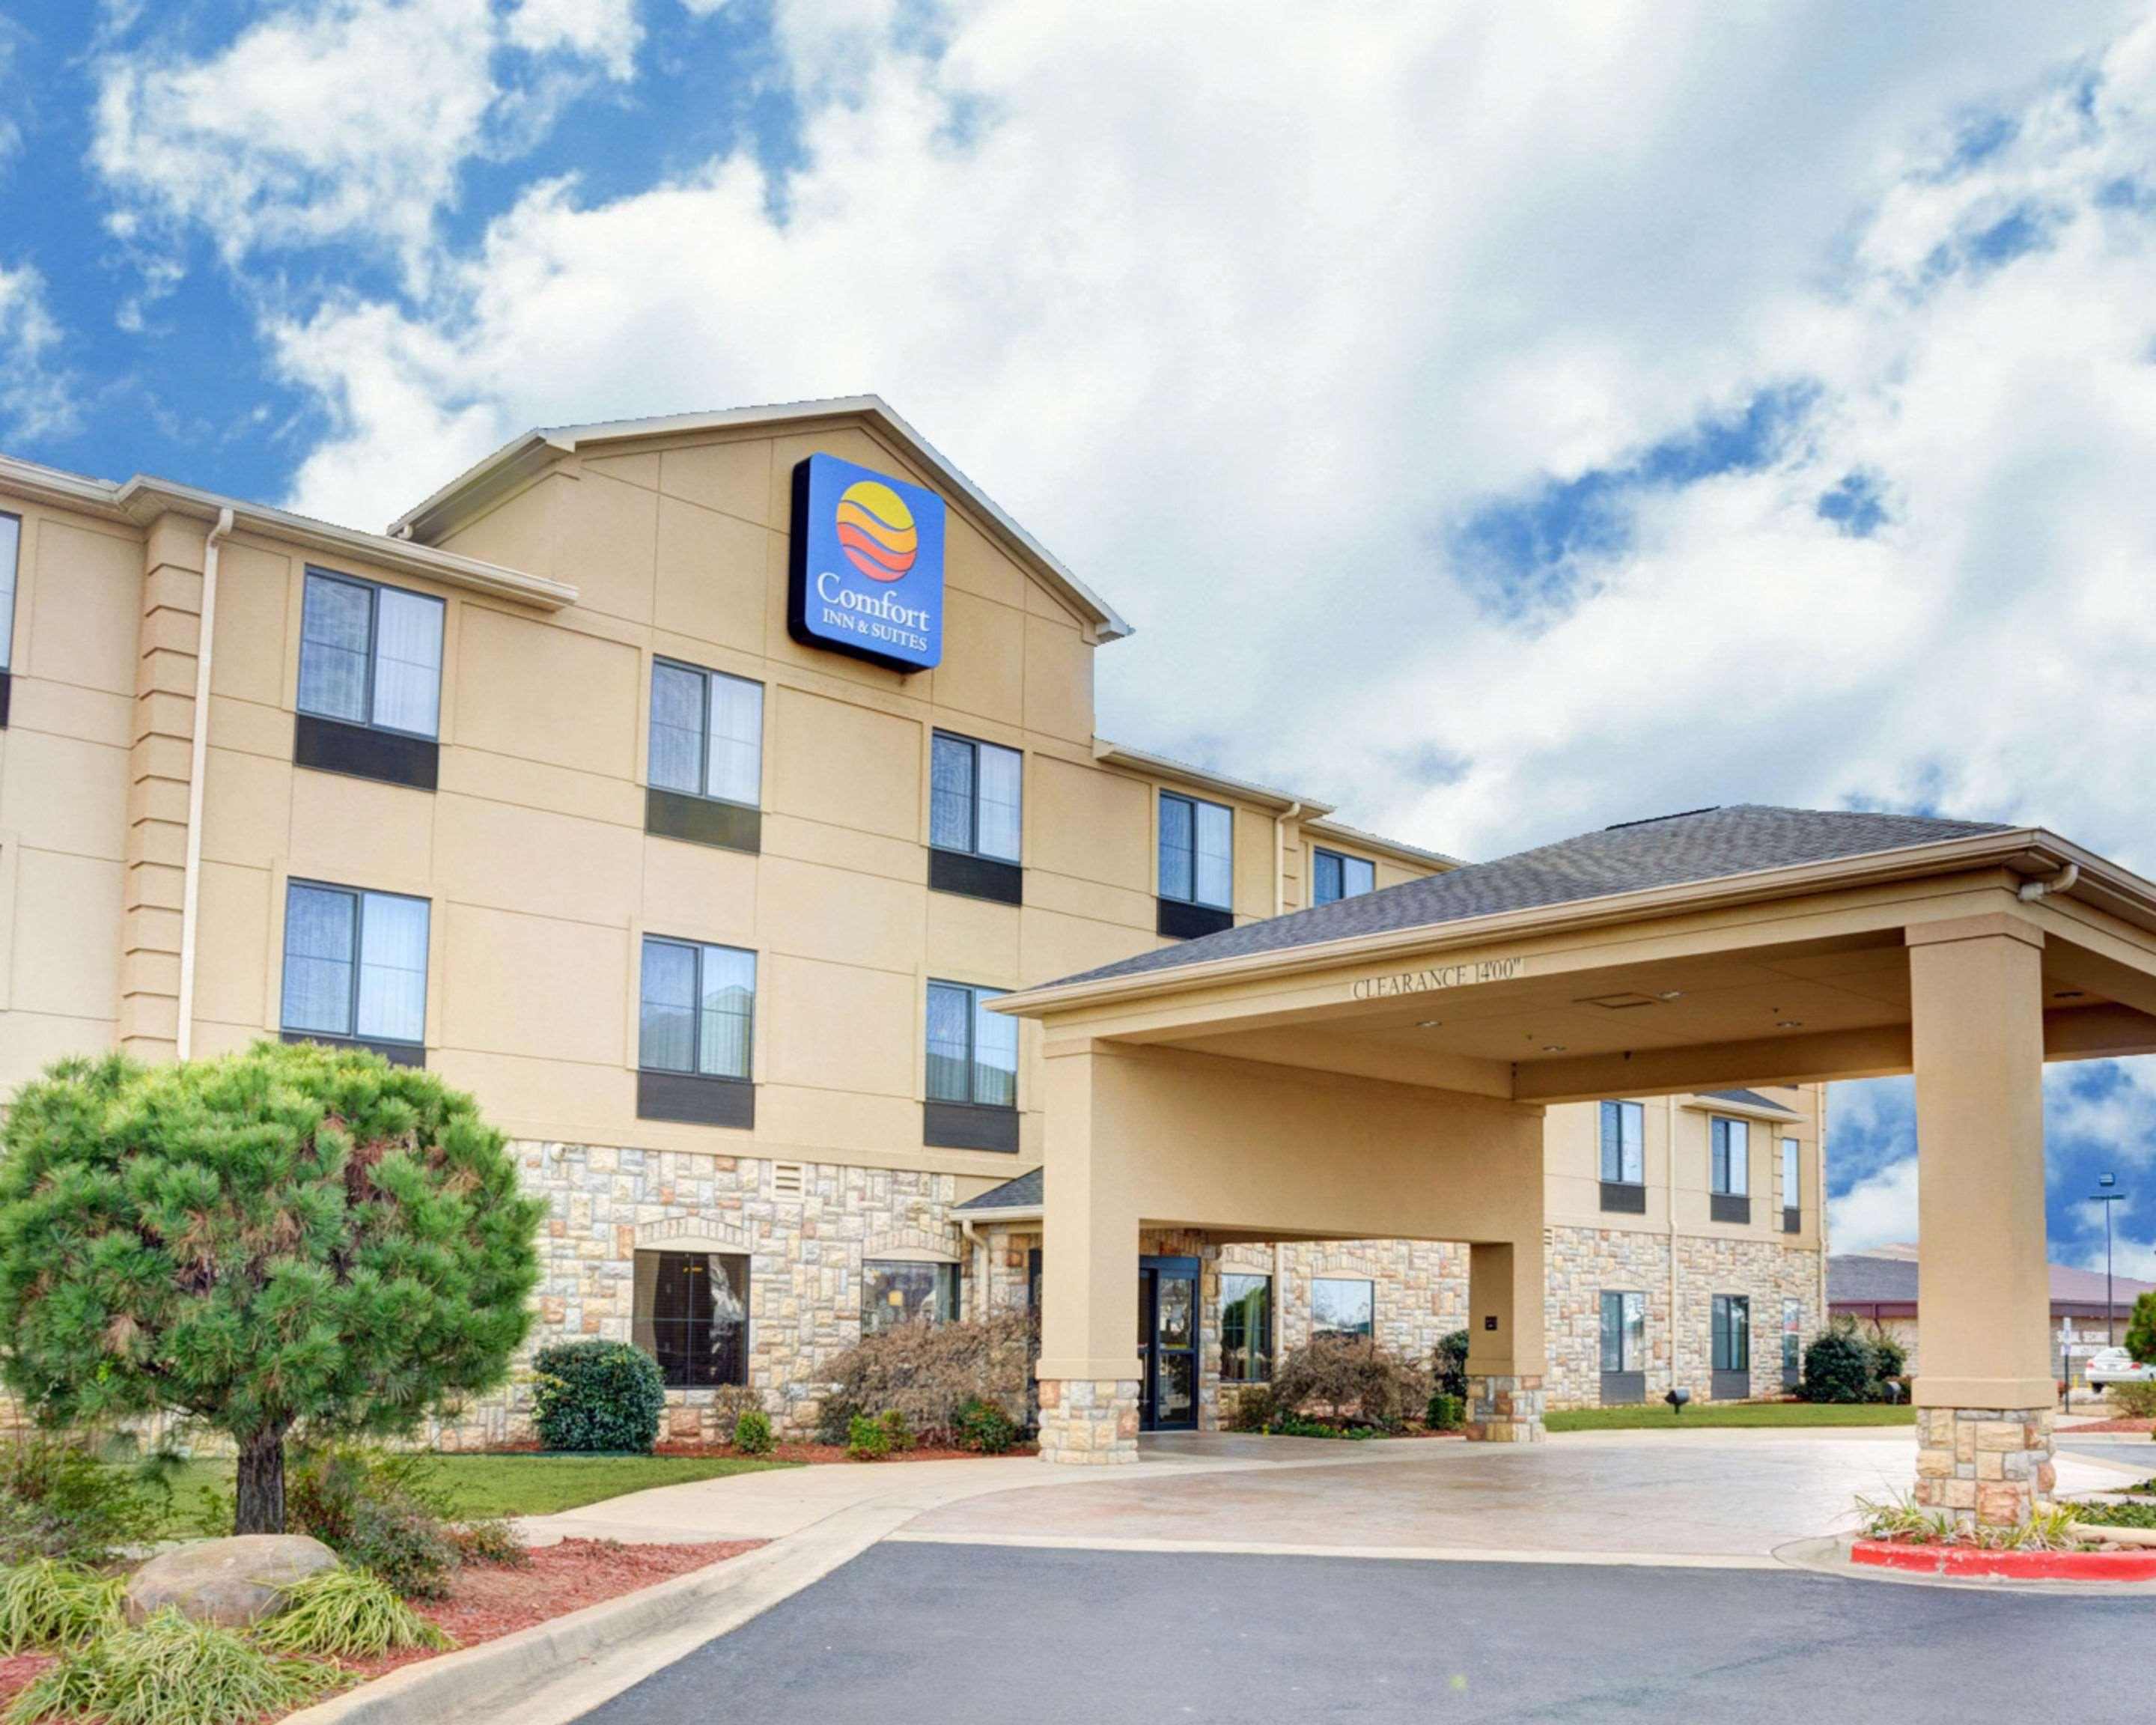 Comfort Inn & Suites Russellville I-40, Pope